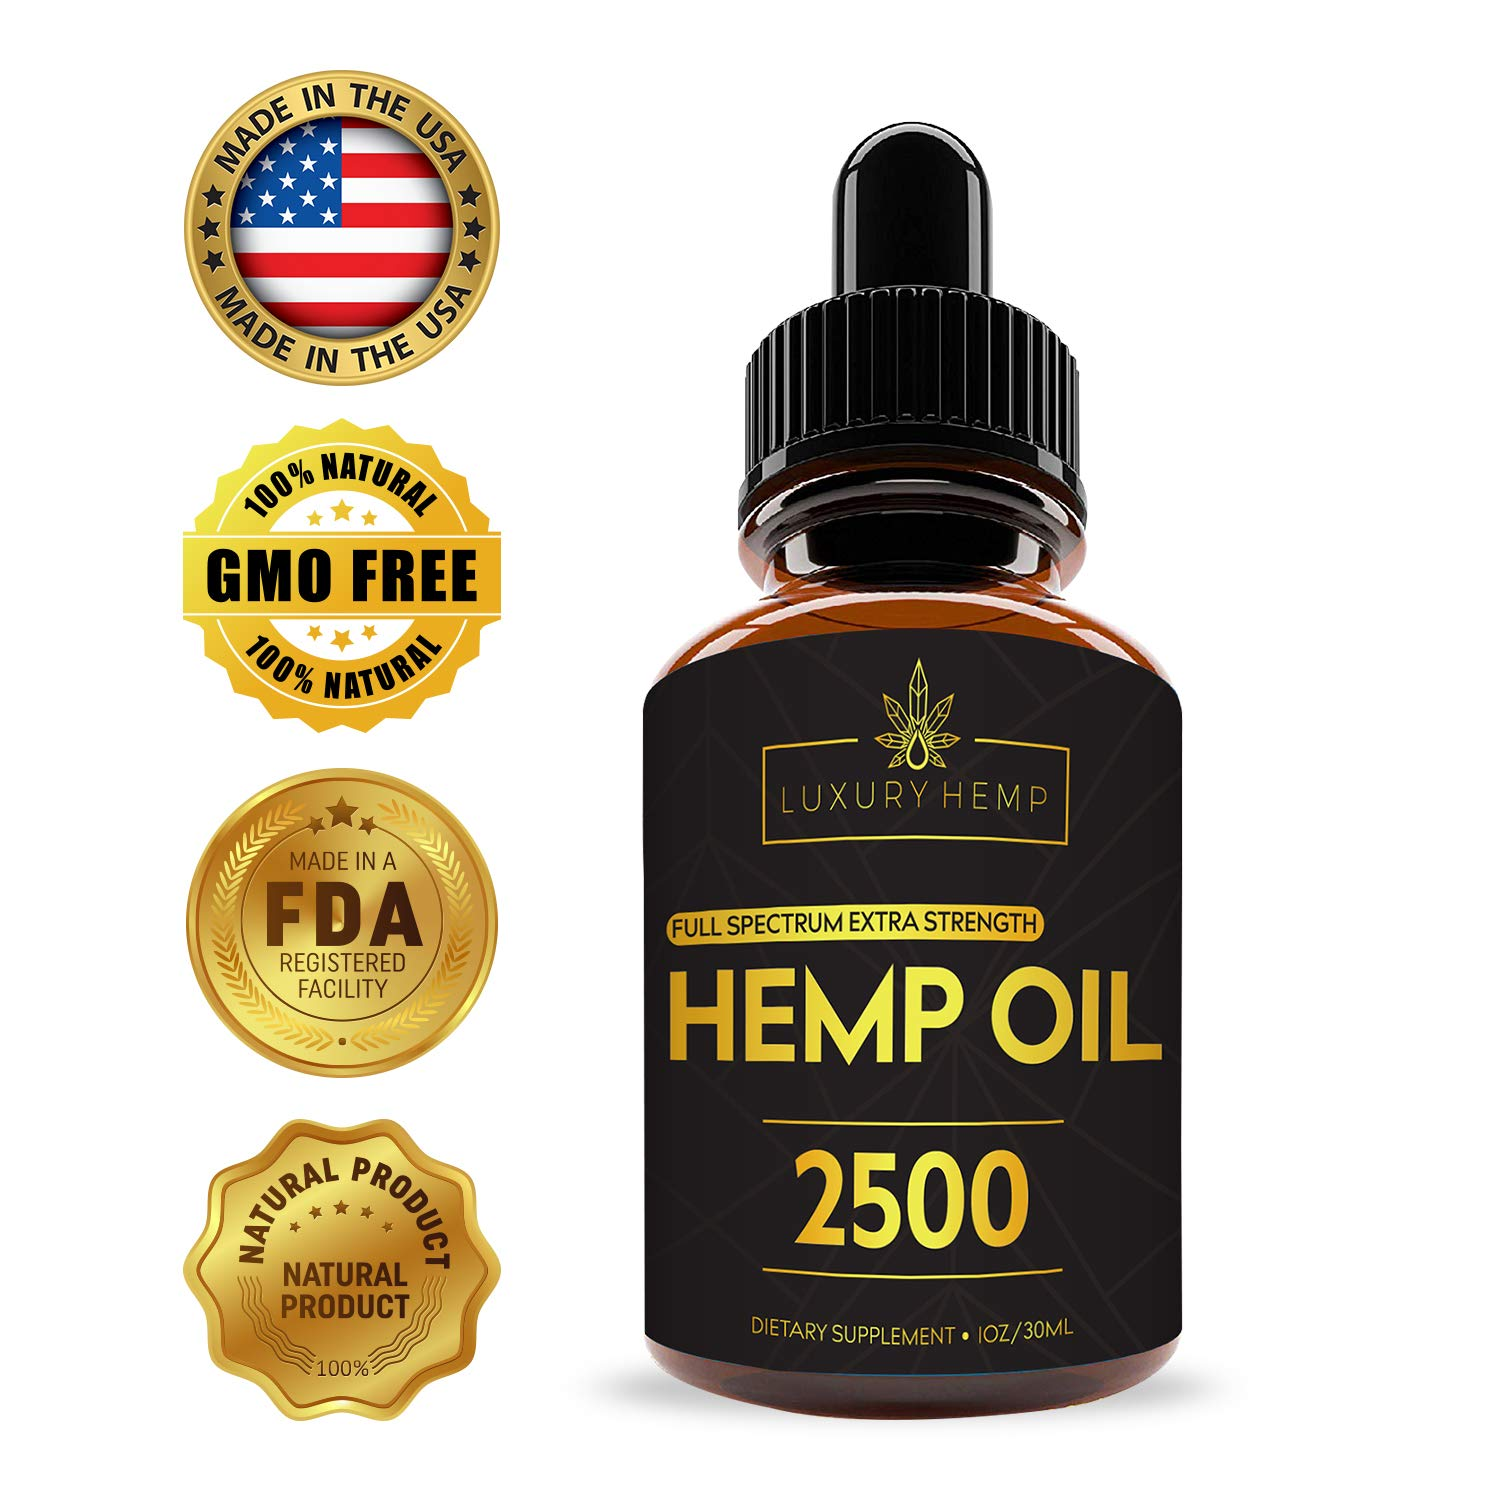 Hemp Oil Extract 2500mg - For Pain Relief - Supports Anxiety Reduction & Mood Support - Helps with Healthy Sleep Patterns - Anti-Inflammatory - Rich in Omega Acids - No THC CBD Cannabidiol Manufacture